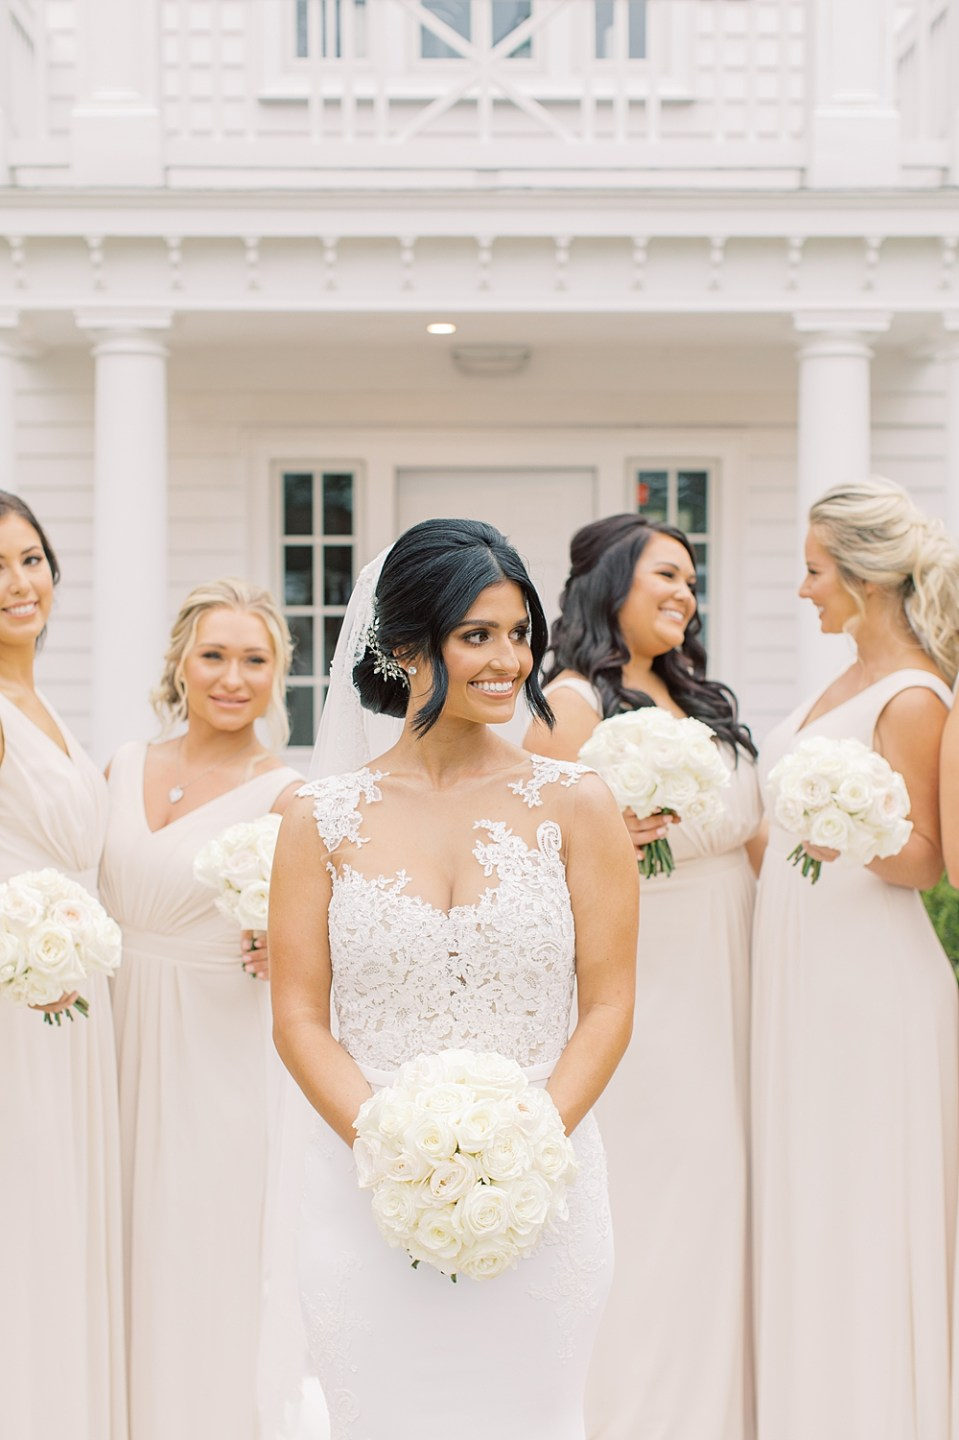 classic bride | ryland inn wedding photography | sarah canning photography